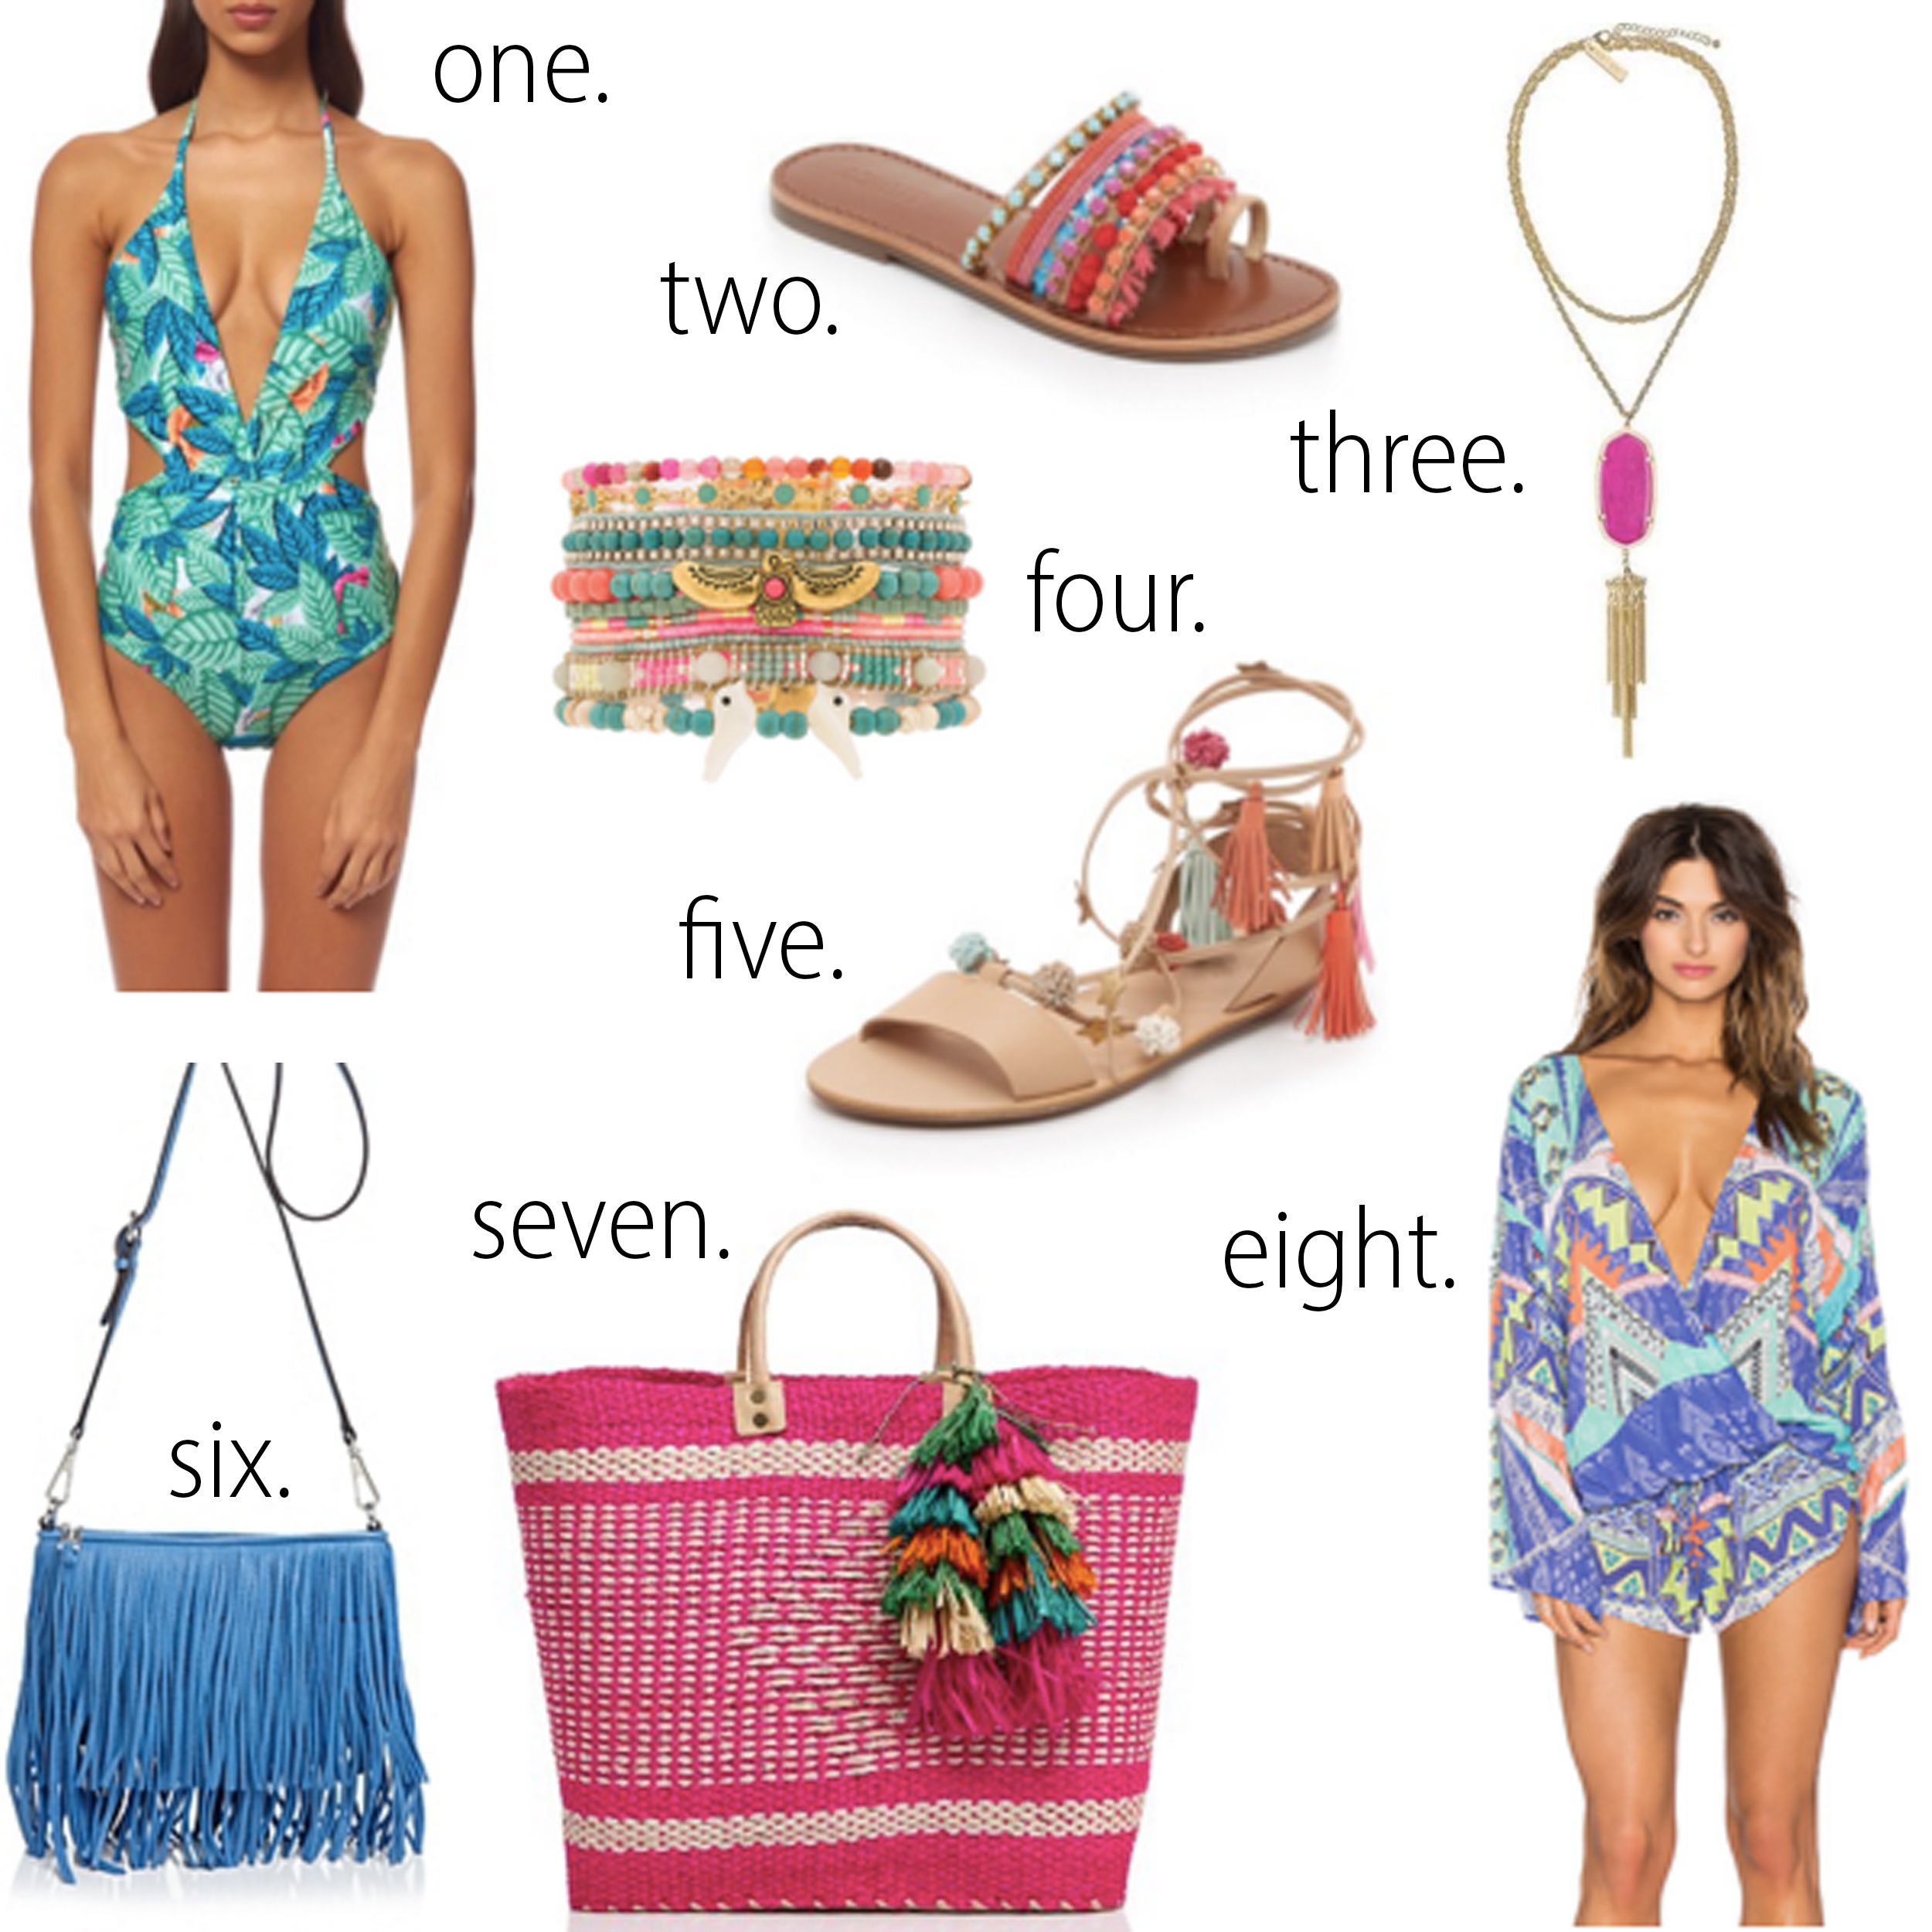 missyonmadison, melissa tierney, tory burch wedges, revolve clothing romper, mara hoffman swimsuit, all for color, all for color bikini, palm print bikini, pineapple bikini, floppy hat, vita liberata, tanning lotion, rebecca minkoff fringe crossbody, neon beach tote, palm springs, palm springs packing guide, what to pack for a weekend getaway, girls trip, summer travel packing, ray bans, loeffler randal sandals, schutz sandals, schutz shoes, lace up sandals, kendra scott necklace, kendra scott rayne necklace,